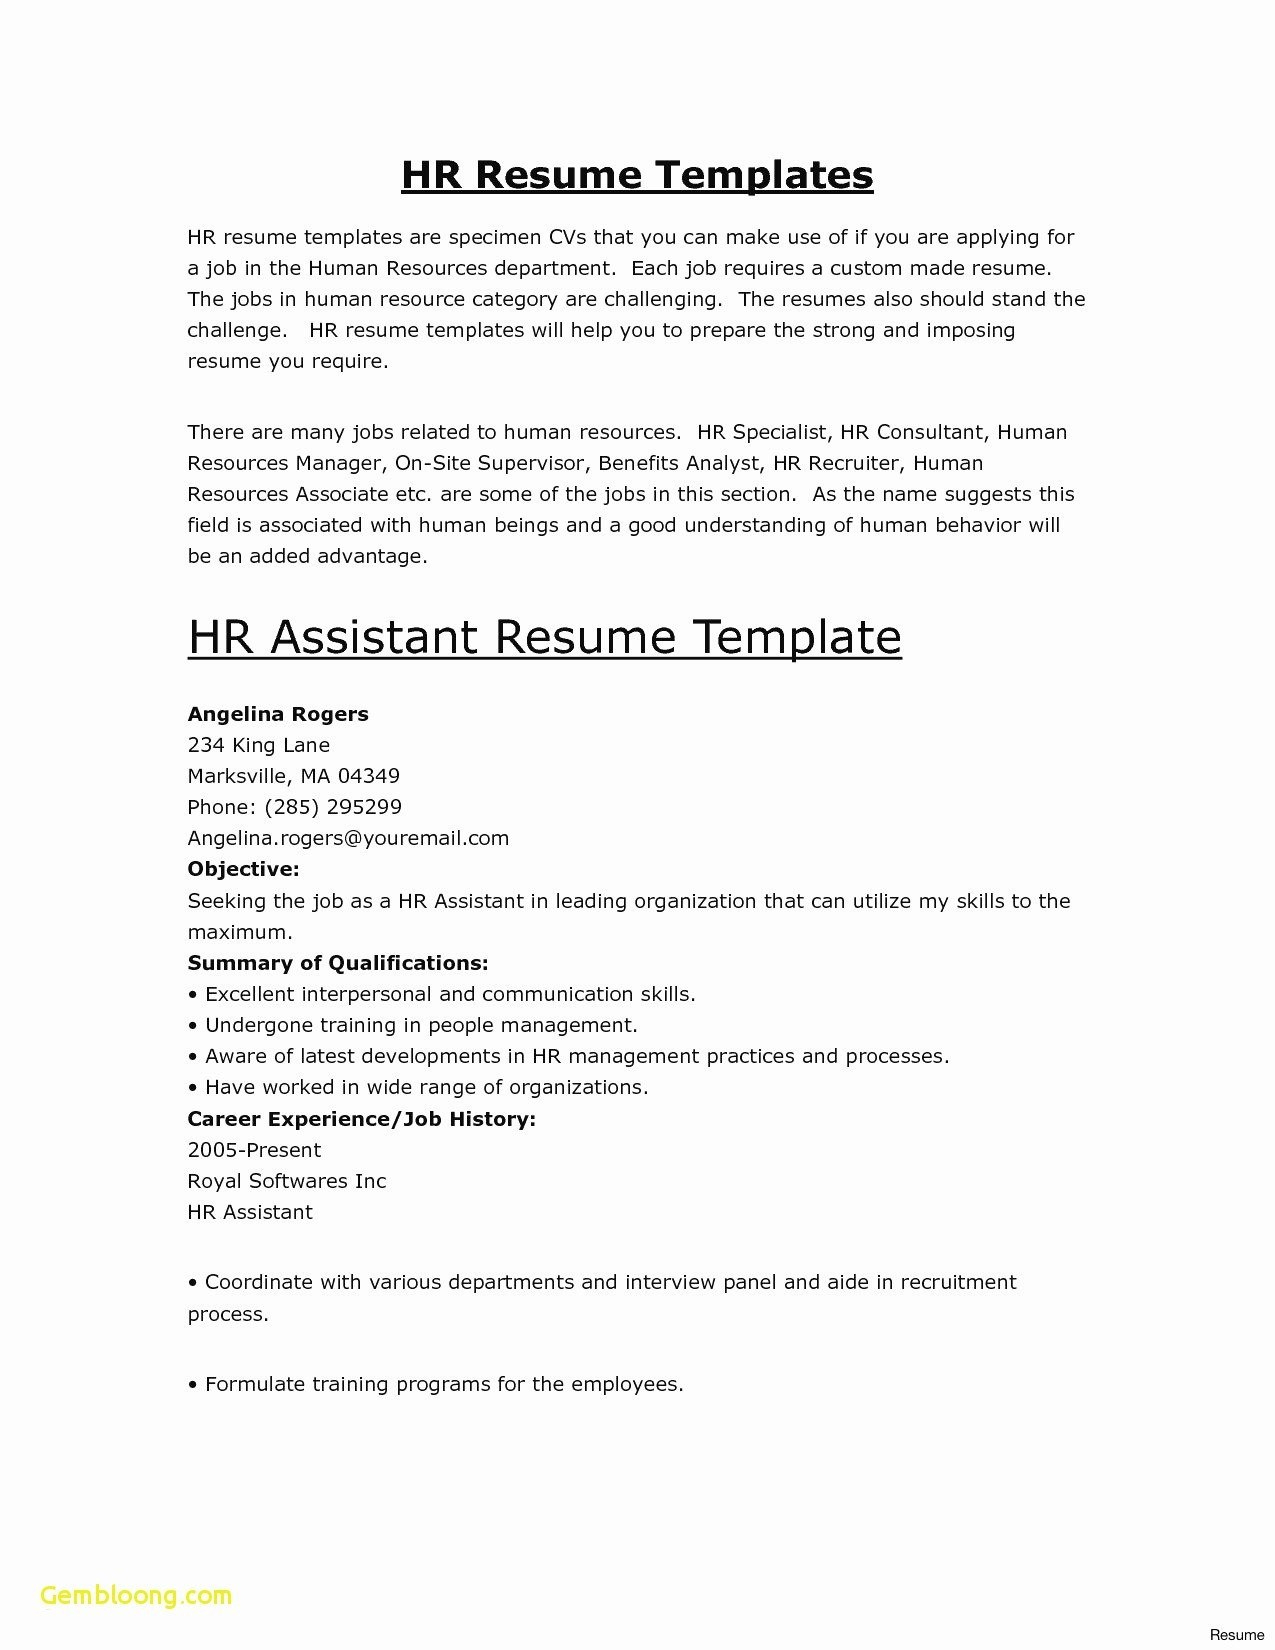 esthetician resume template example-Esthetician Resume Samples Awesome Resume for Freshers Download now 8-o